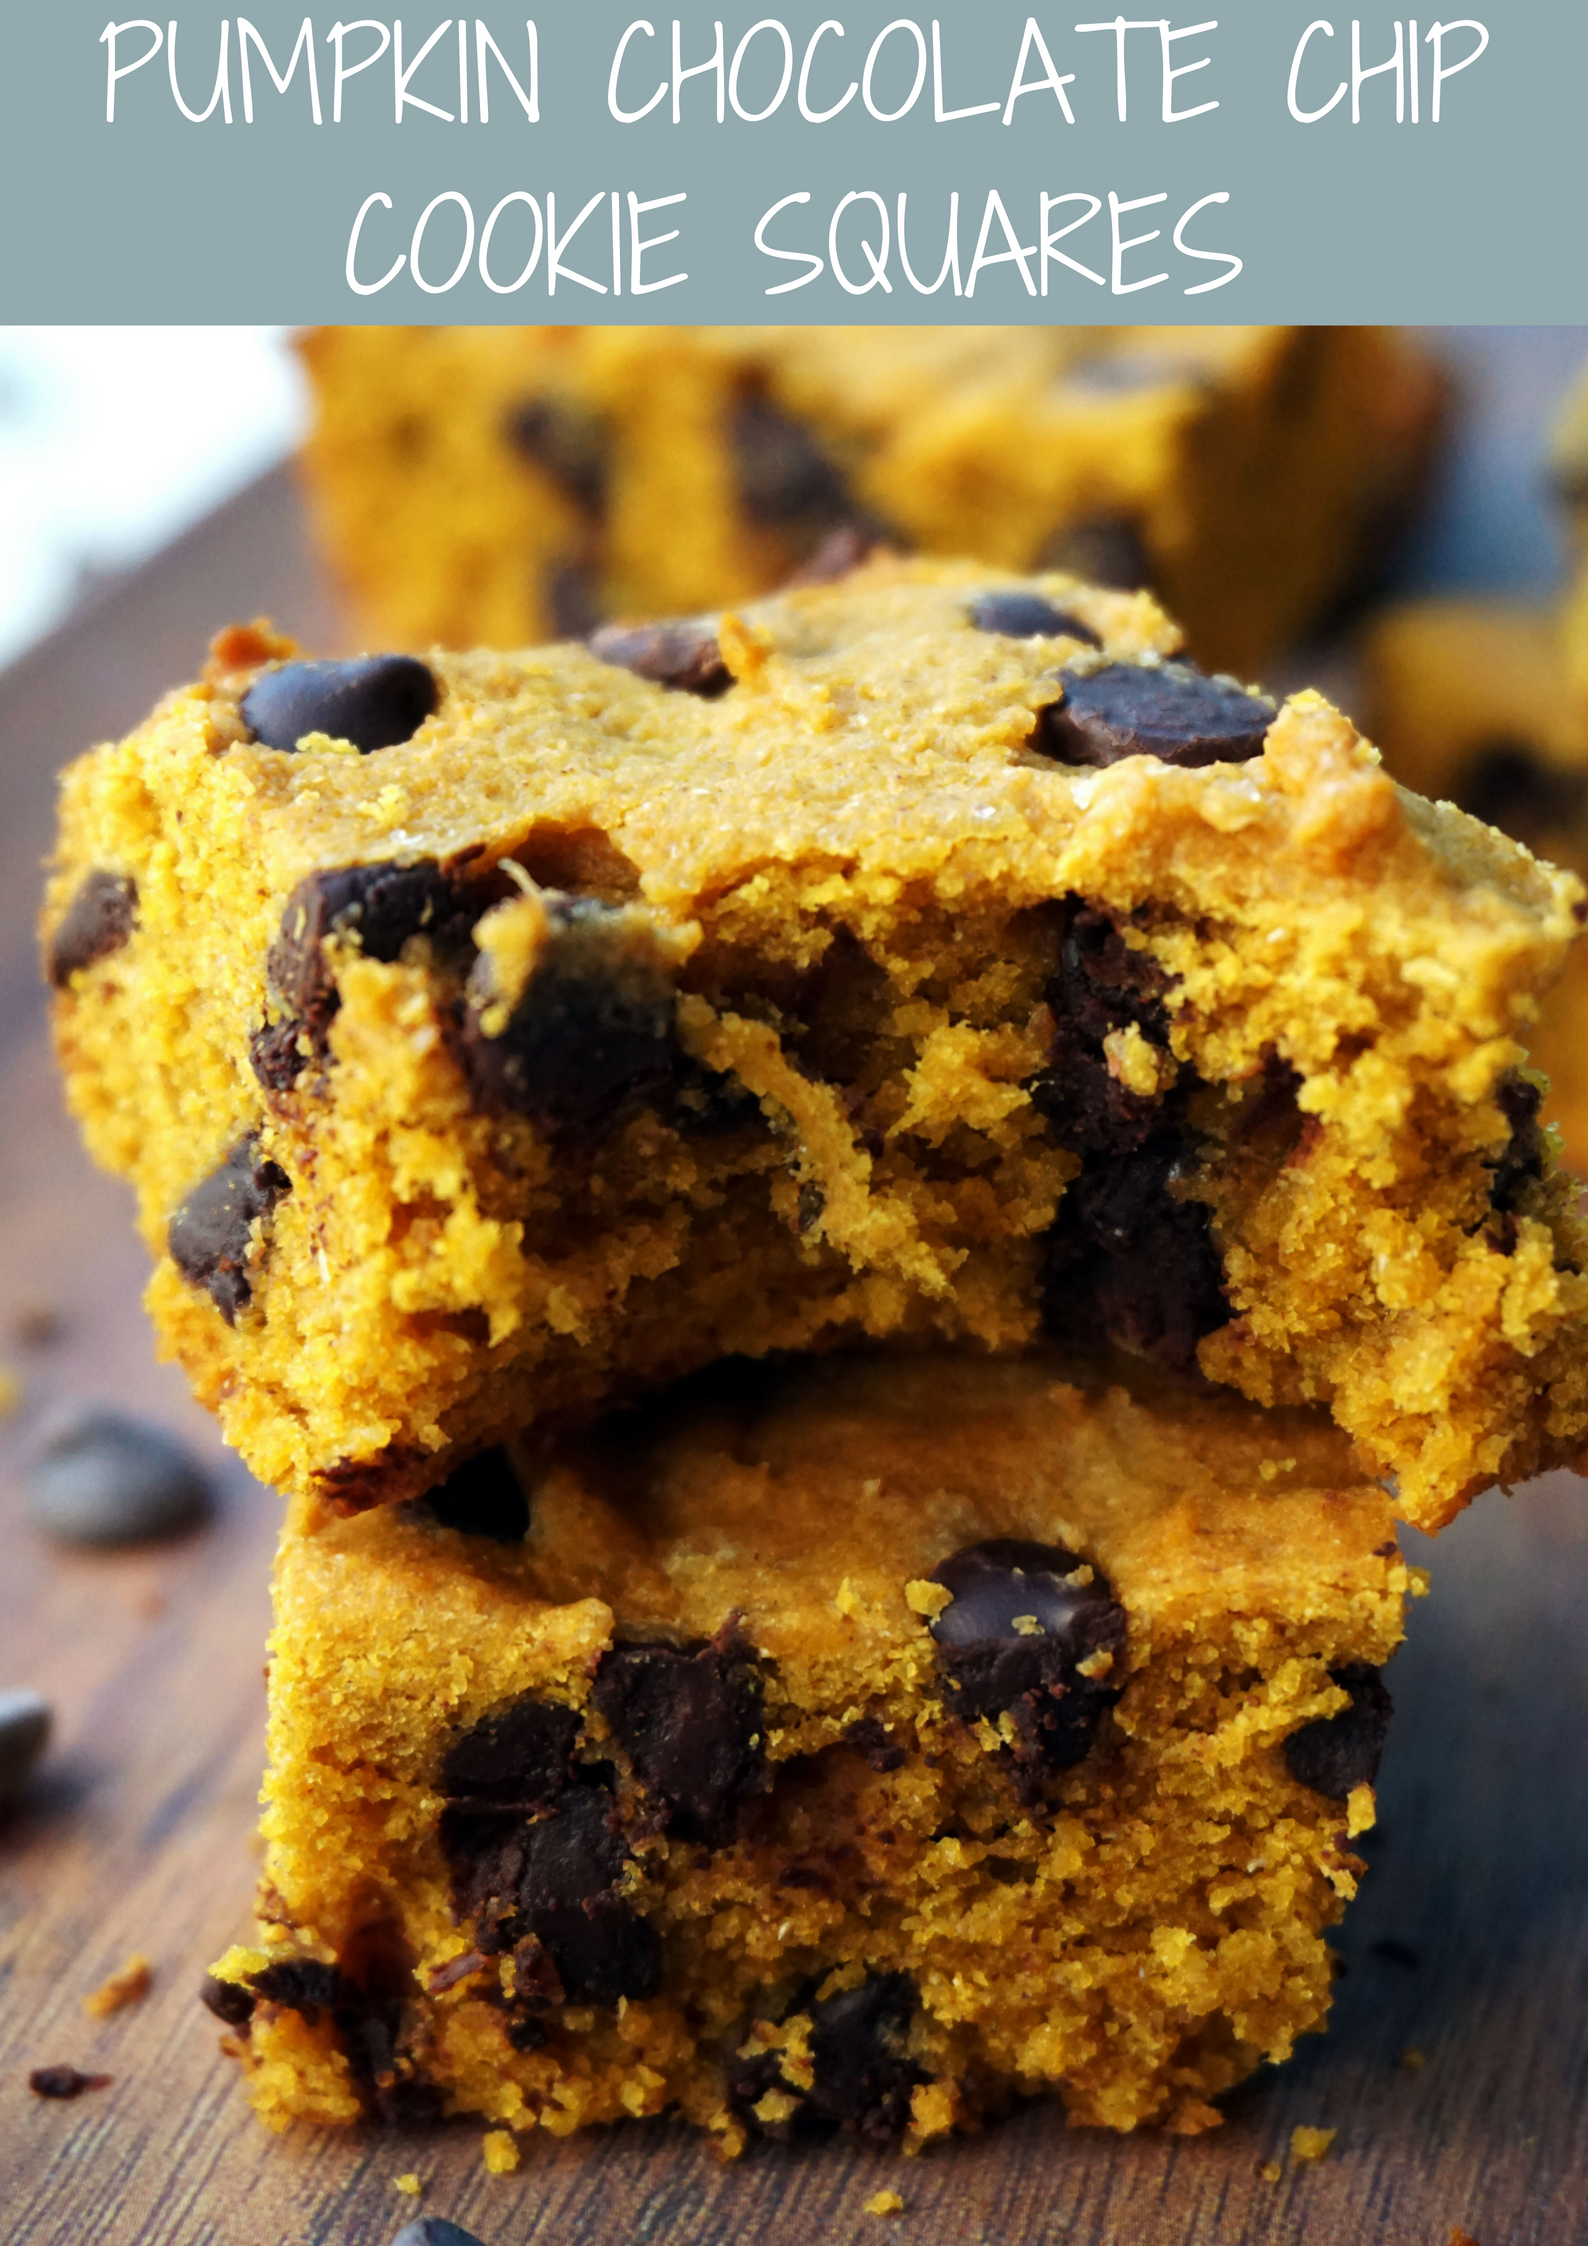 PUMPKIN CHOCOLATE CHIP COOKIE SQUARES.png